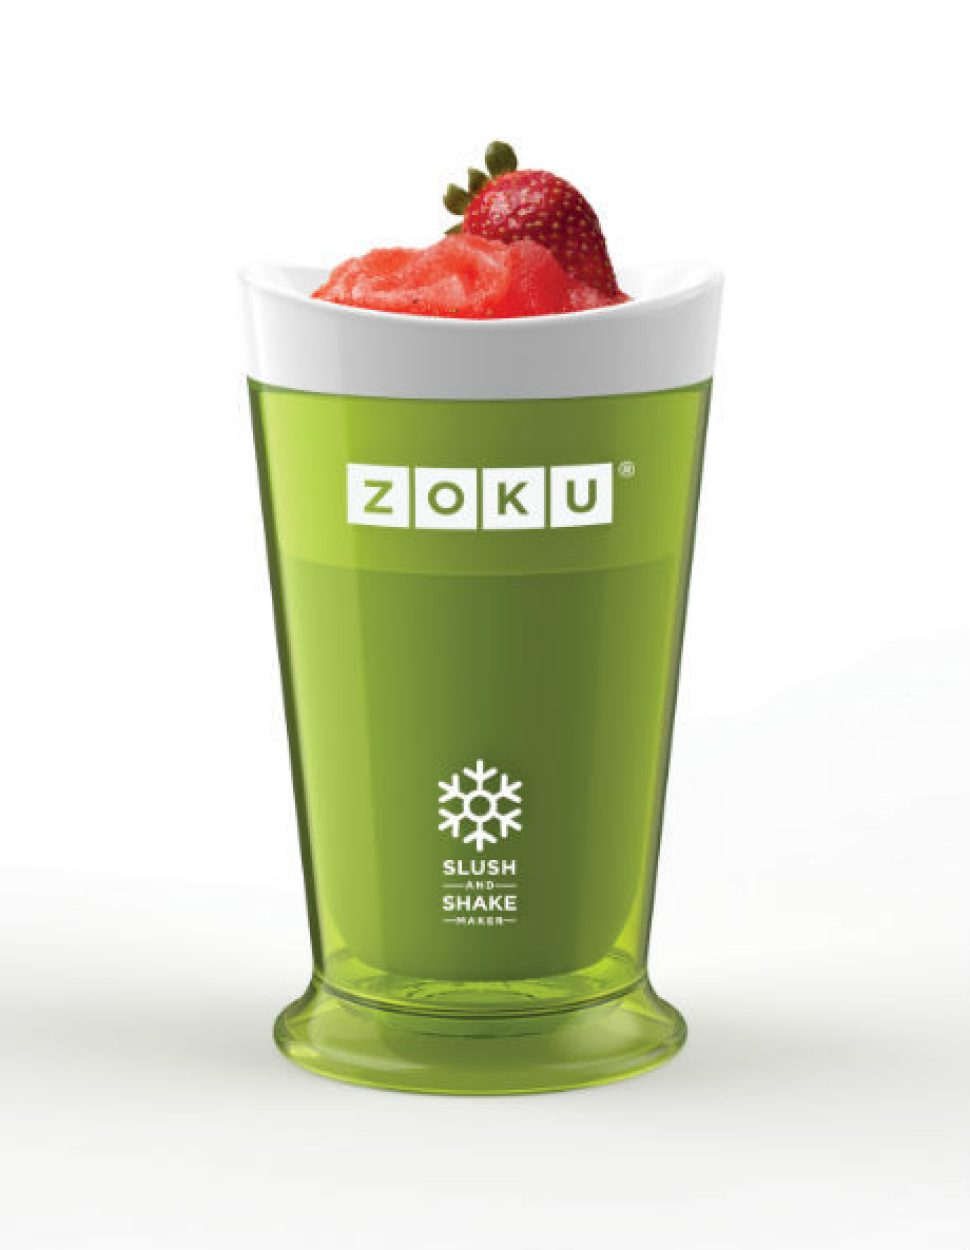 Green Zoku slushie maker